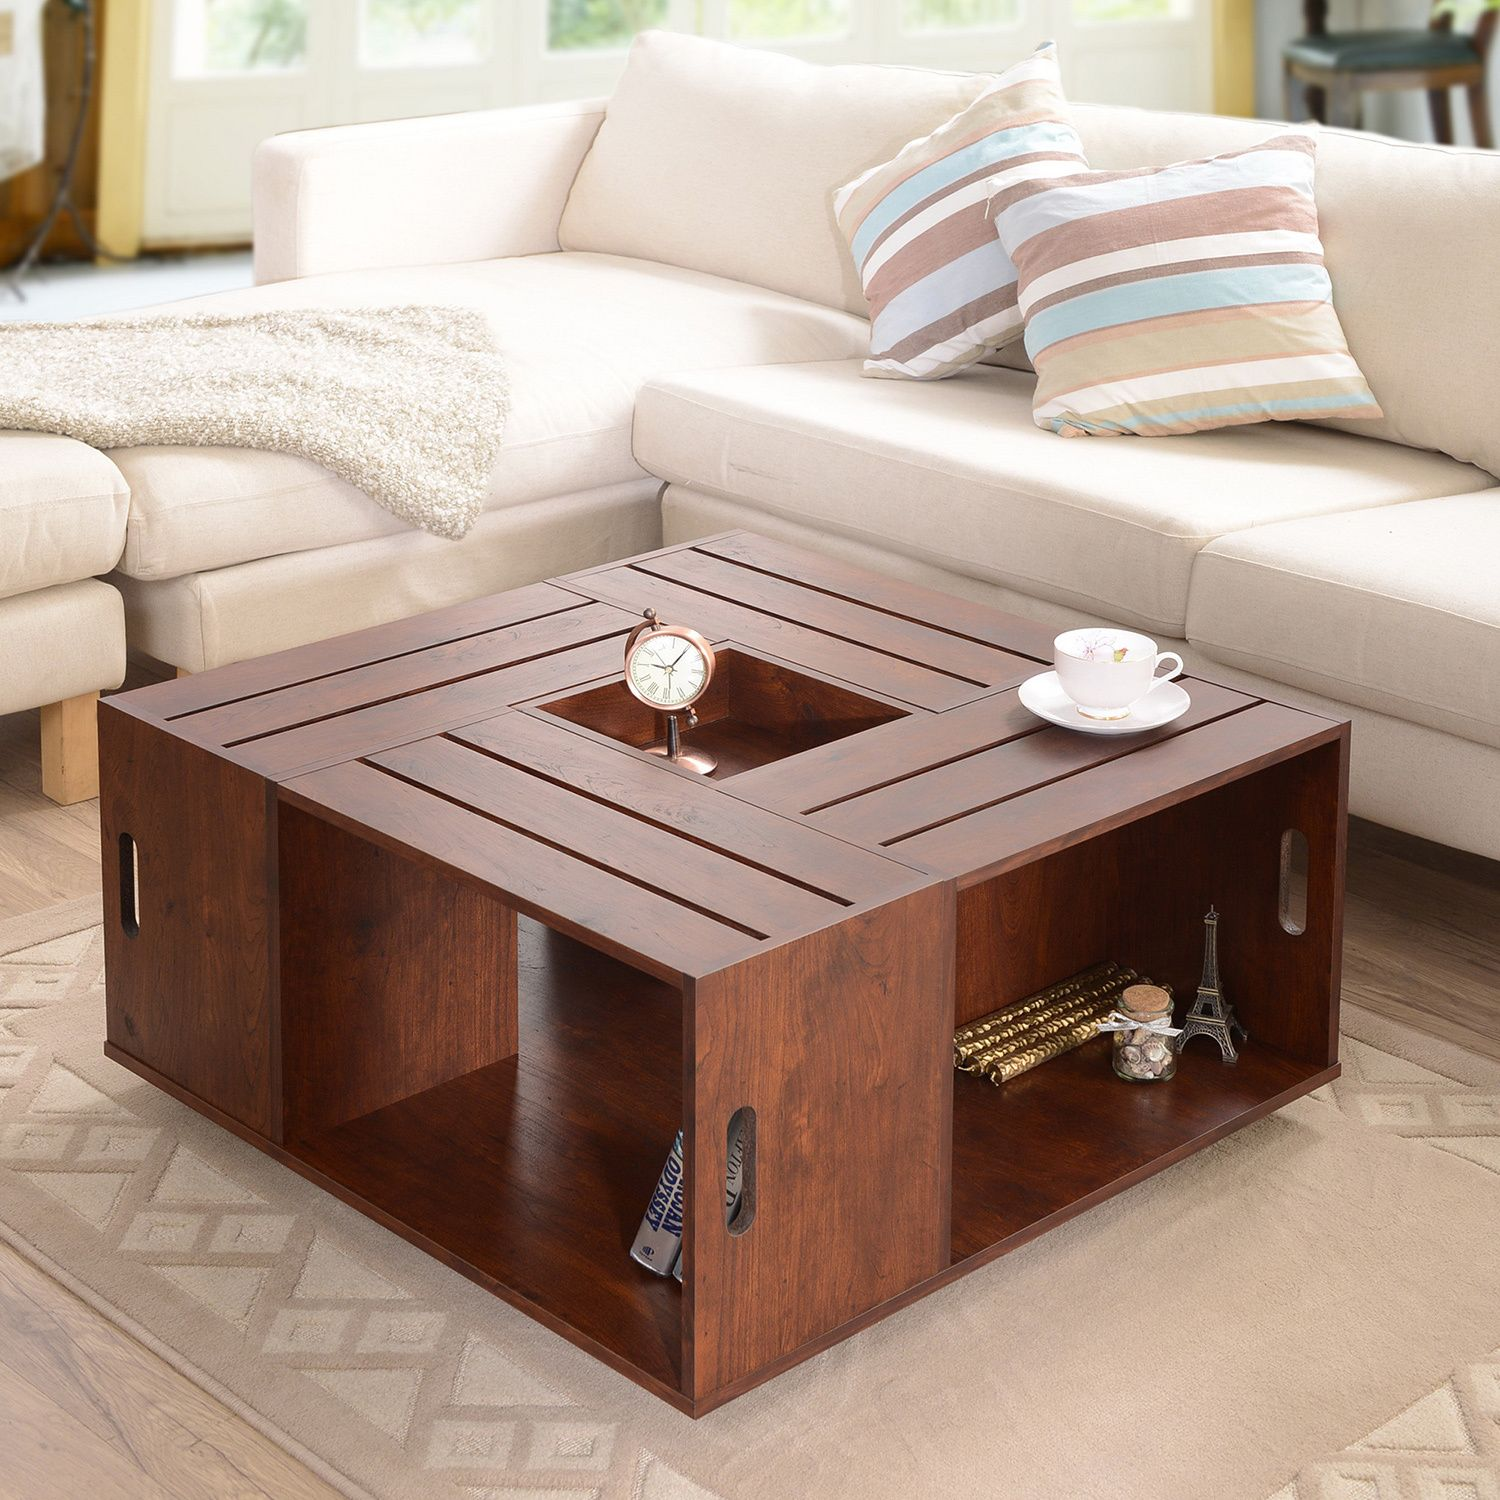 Add Artisan Inspired Style To Your Living Room Decor With This Wine Crate Coffee Table This